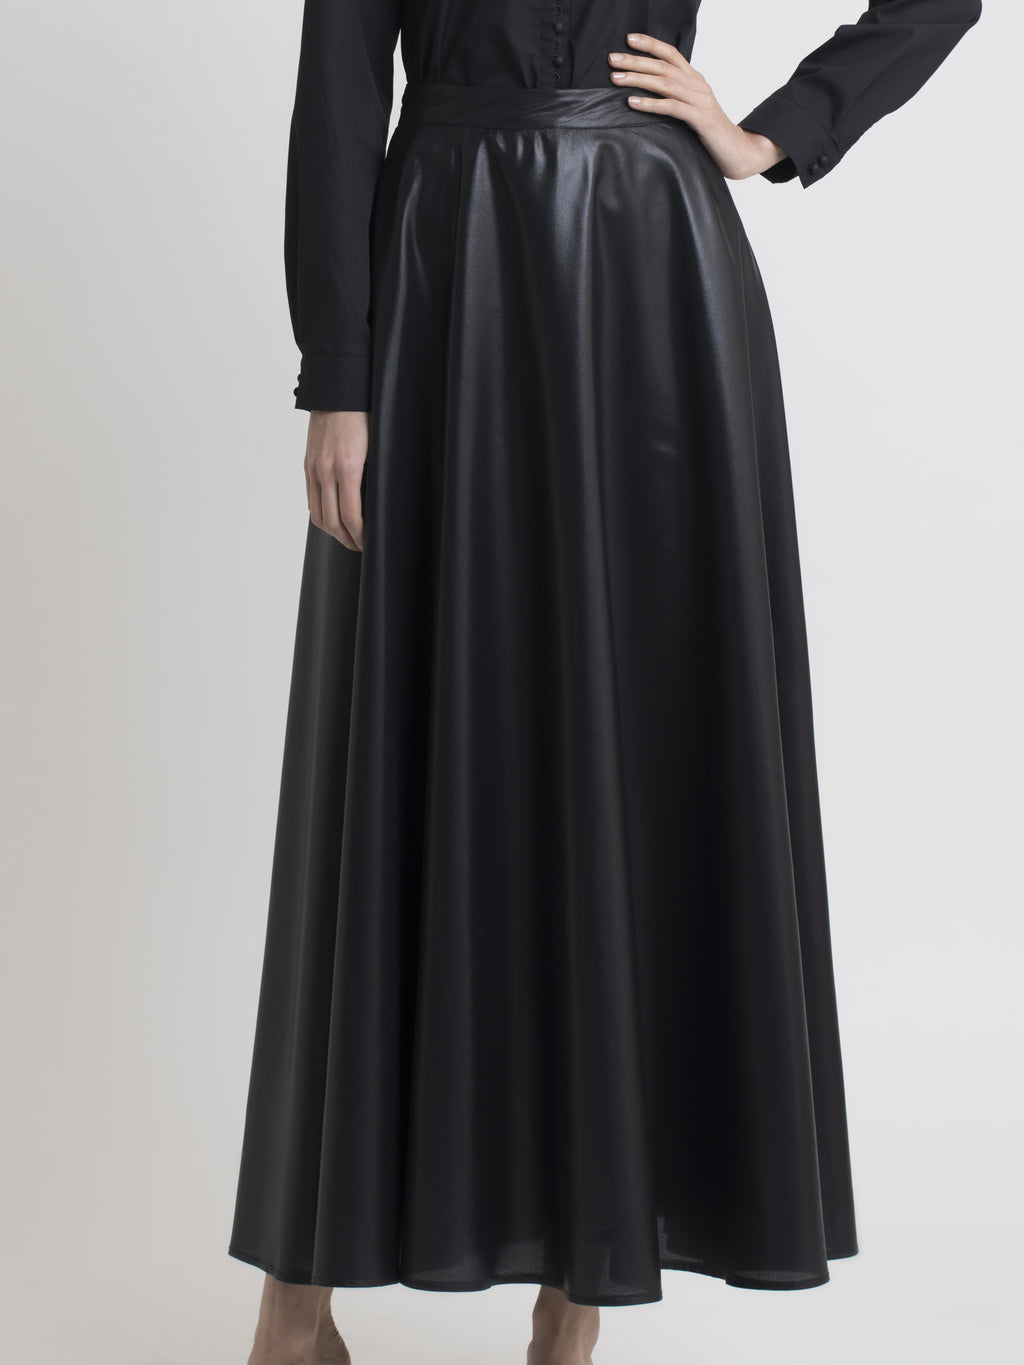 Lower body view of a female model wearing a black cotton dress shirt, and a long eggshell-gloss black flared skirt, from the RÉZO women's collection.